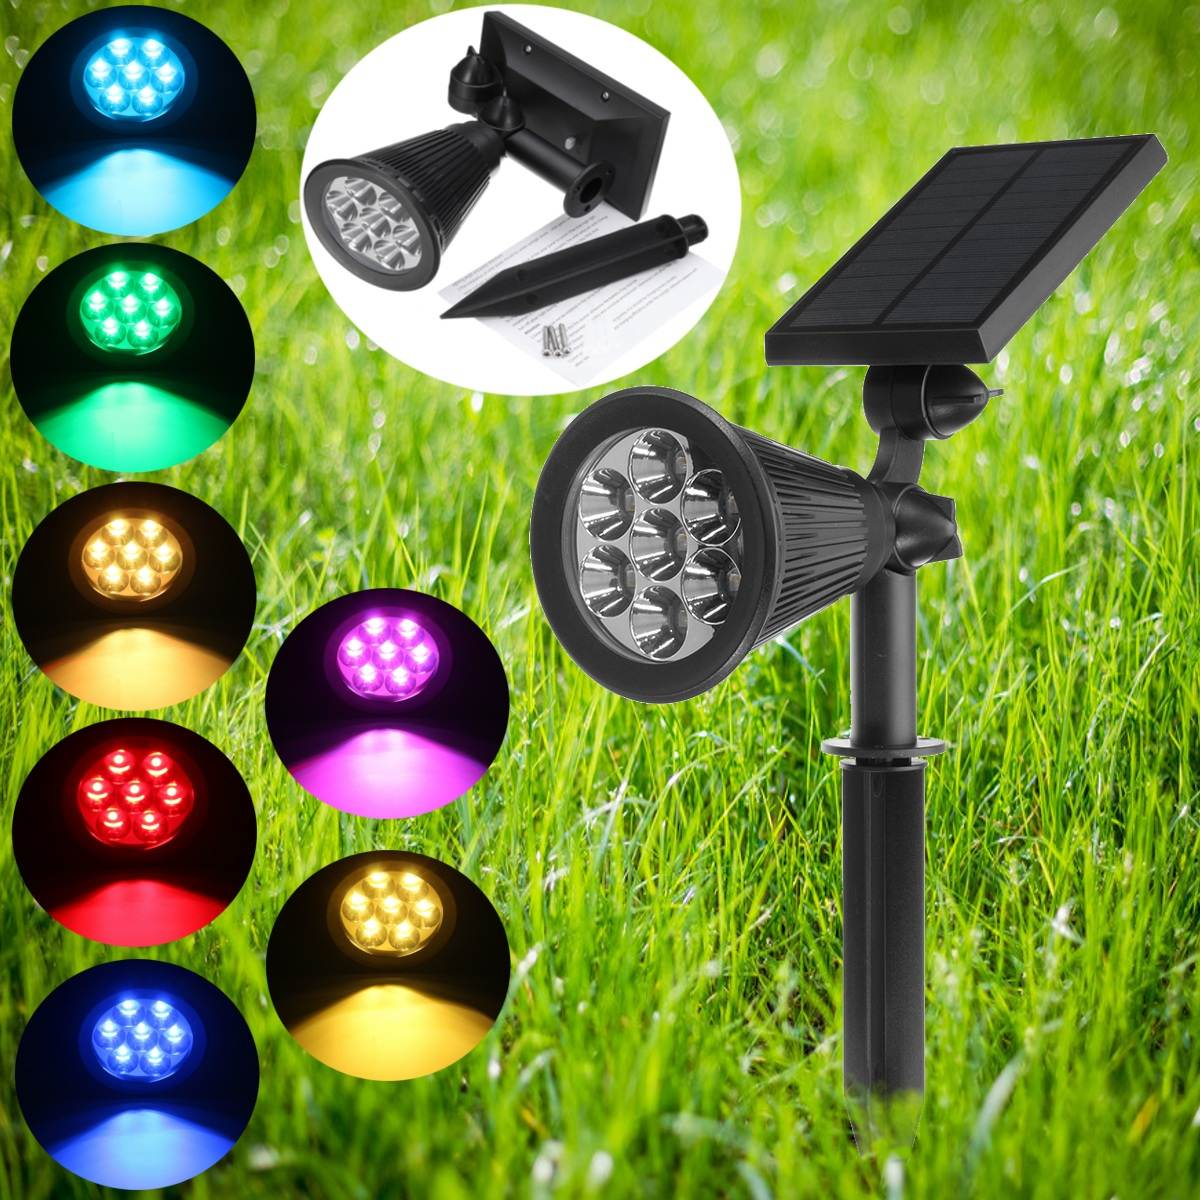 Light Sensor Solar Powered 7 RGB LED Solar Light LED Garden Lamp Spot Light Outdoor Lawn Landscape Spotlight Lighting 3W yj 2338w 3w 350lm 6000k 60 led white light solar powered spotlight white 3 7v